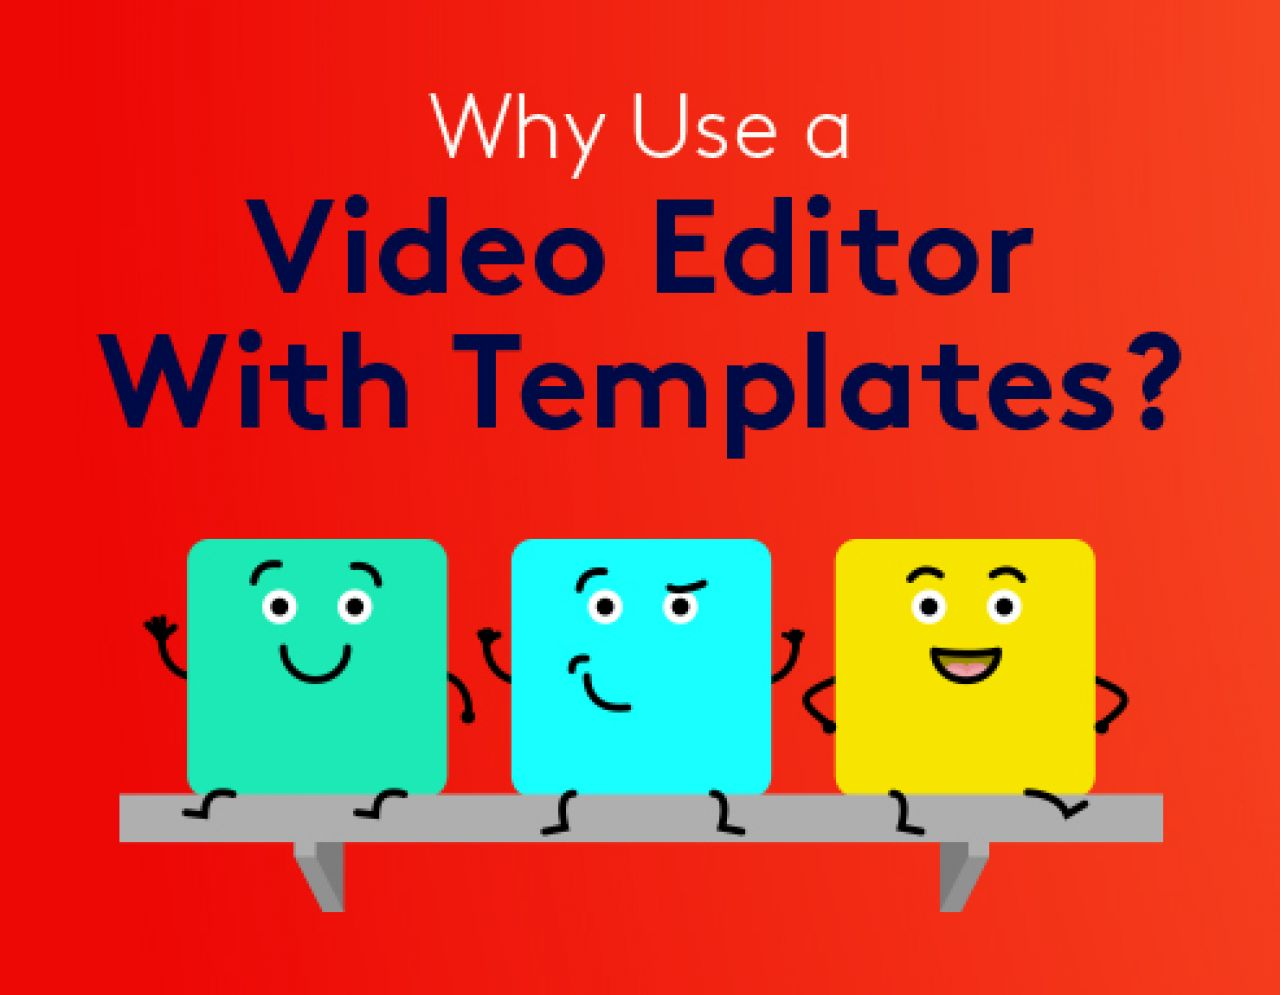 why use a video editor with templates